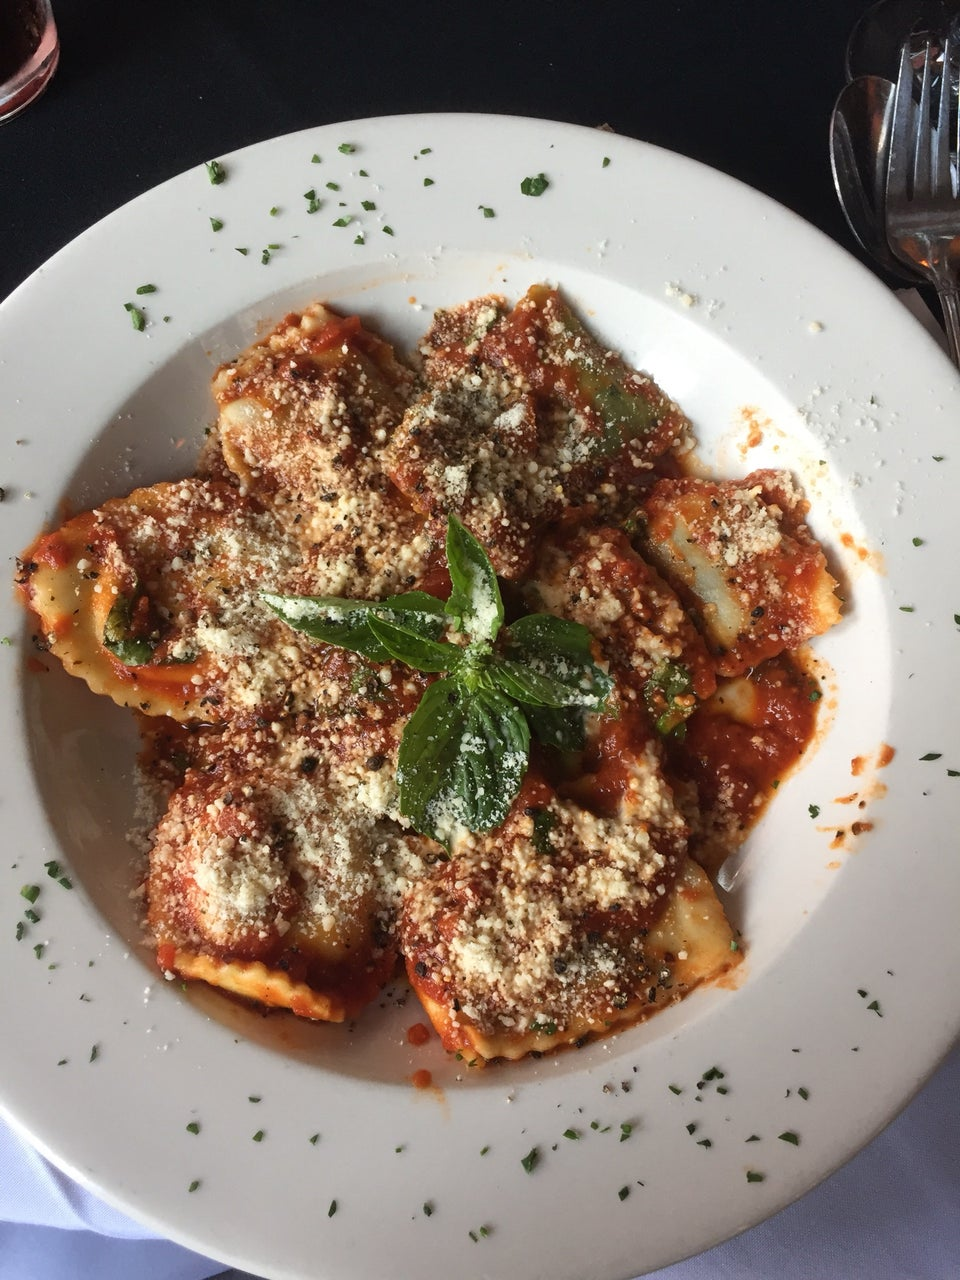 Photo of Lasagna Ristorante Chelsea